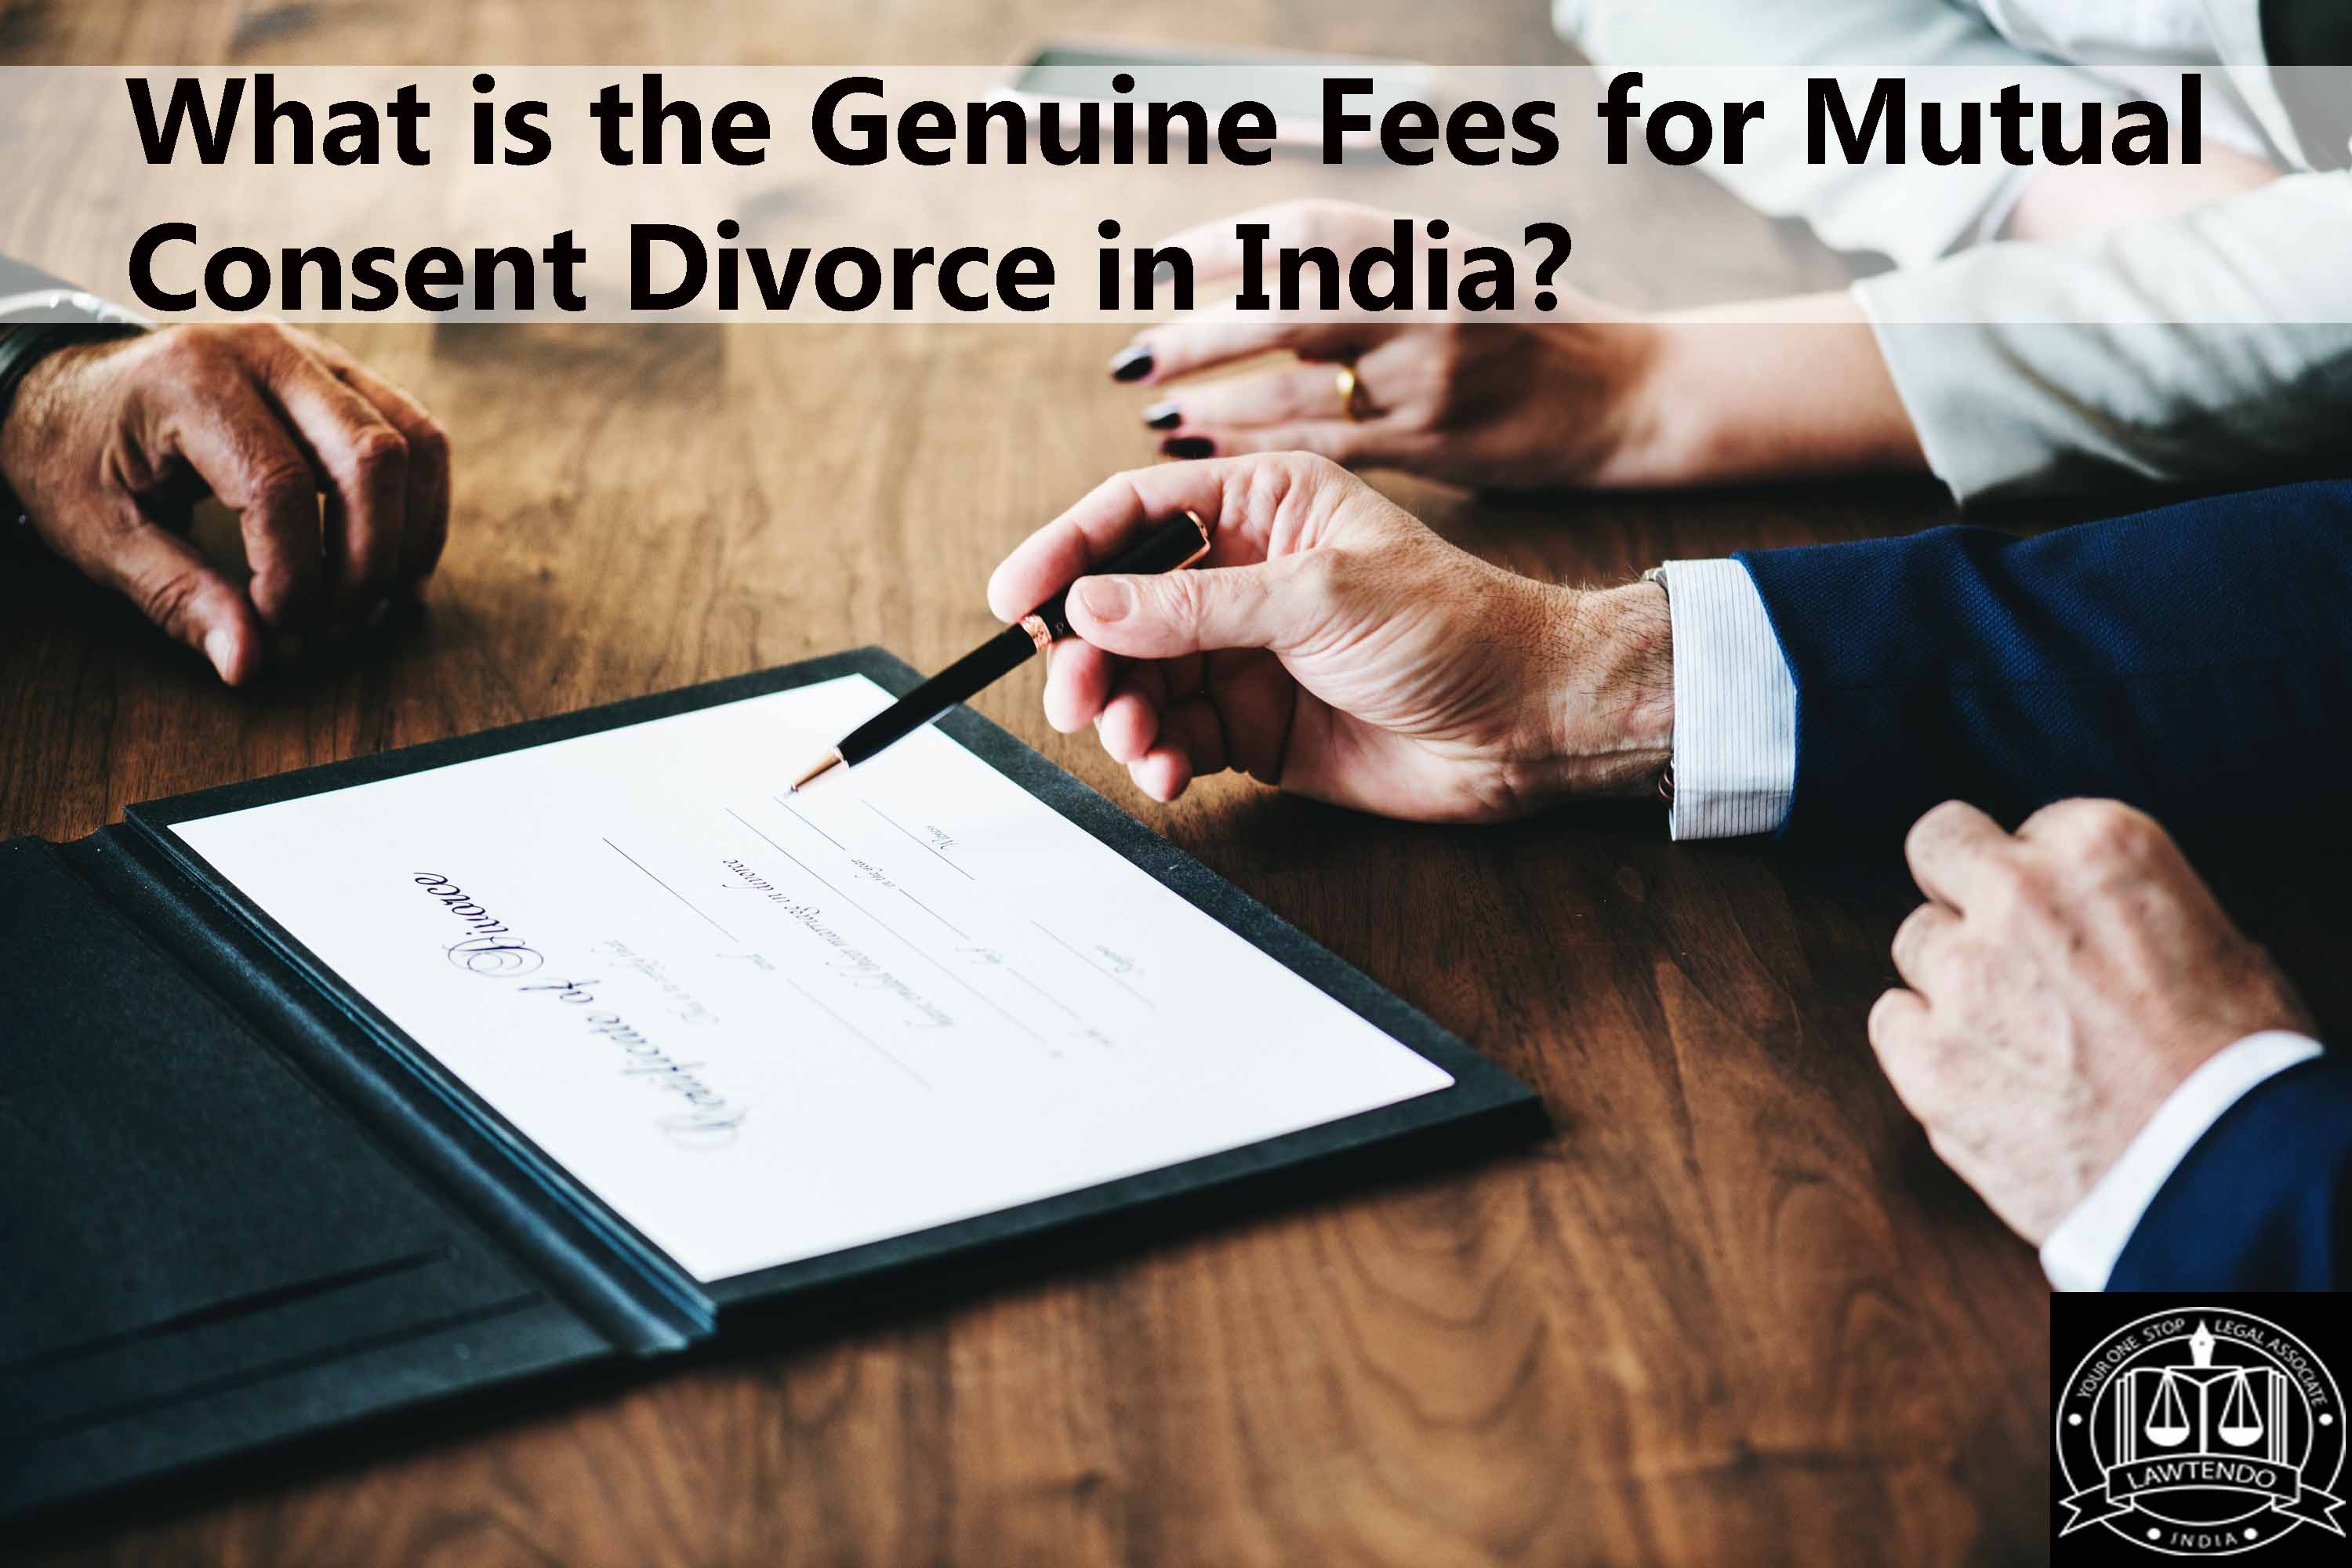 What is the Genuine Fee for the Mutual Consent Divorce in India?